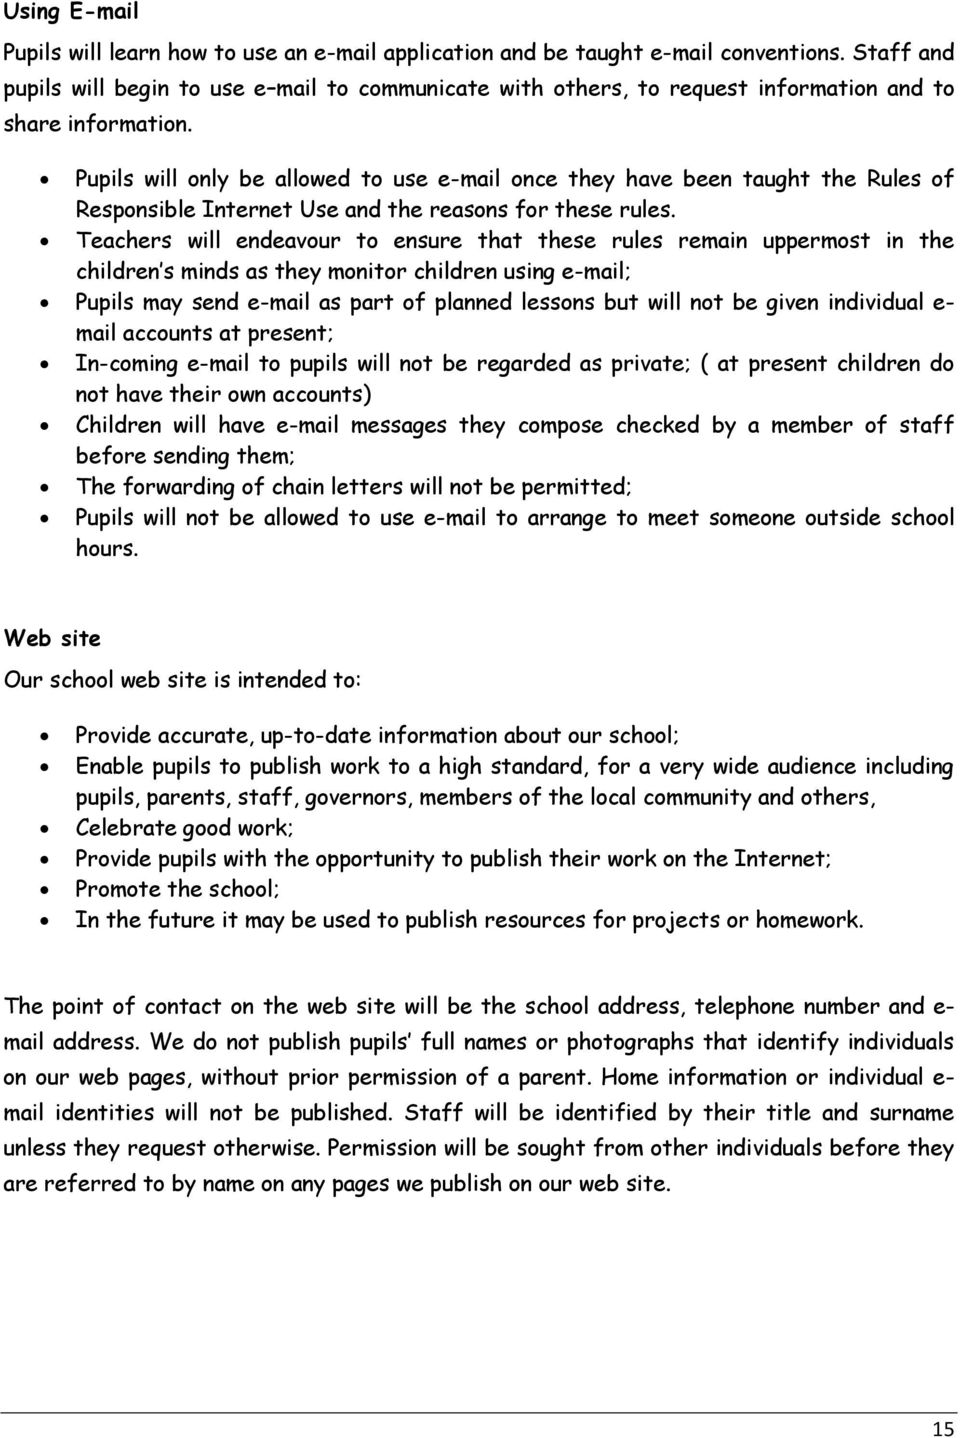 Pupils will only be allowed to use e-mail once they have been taught the Rules of Responsible Internet Use and the reasons for these rules.